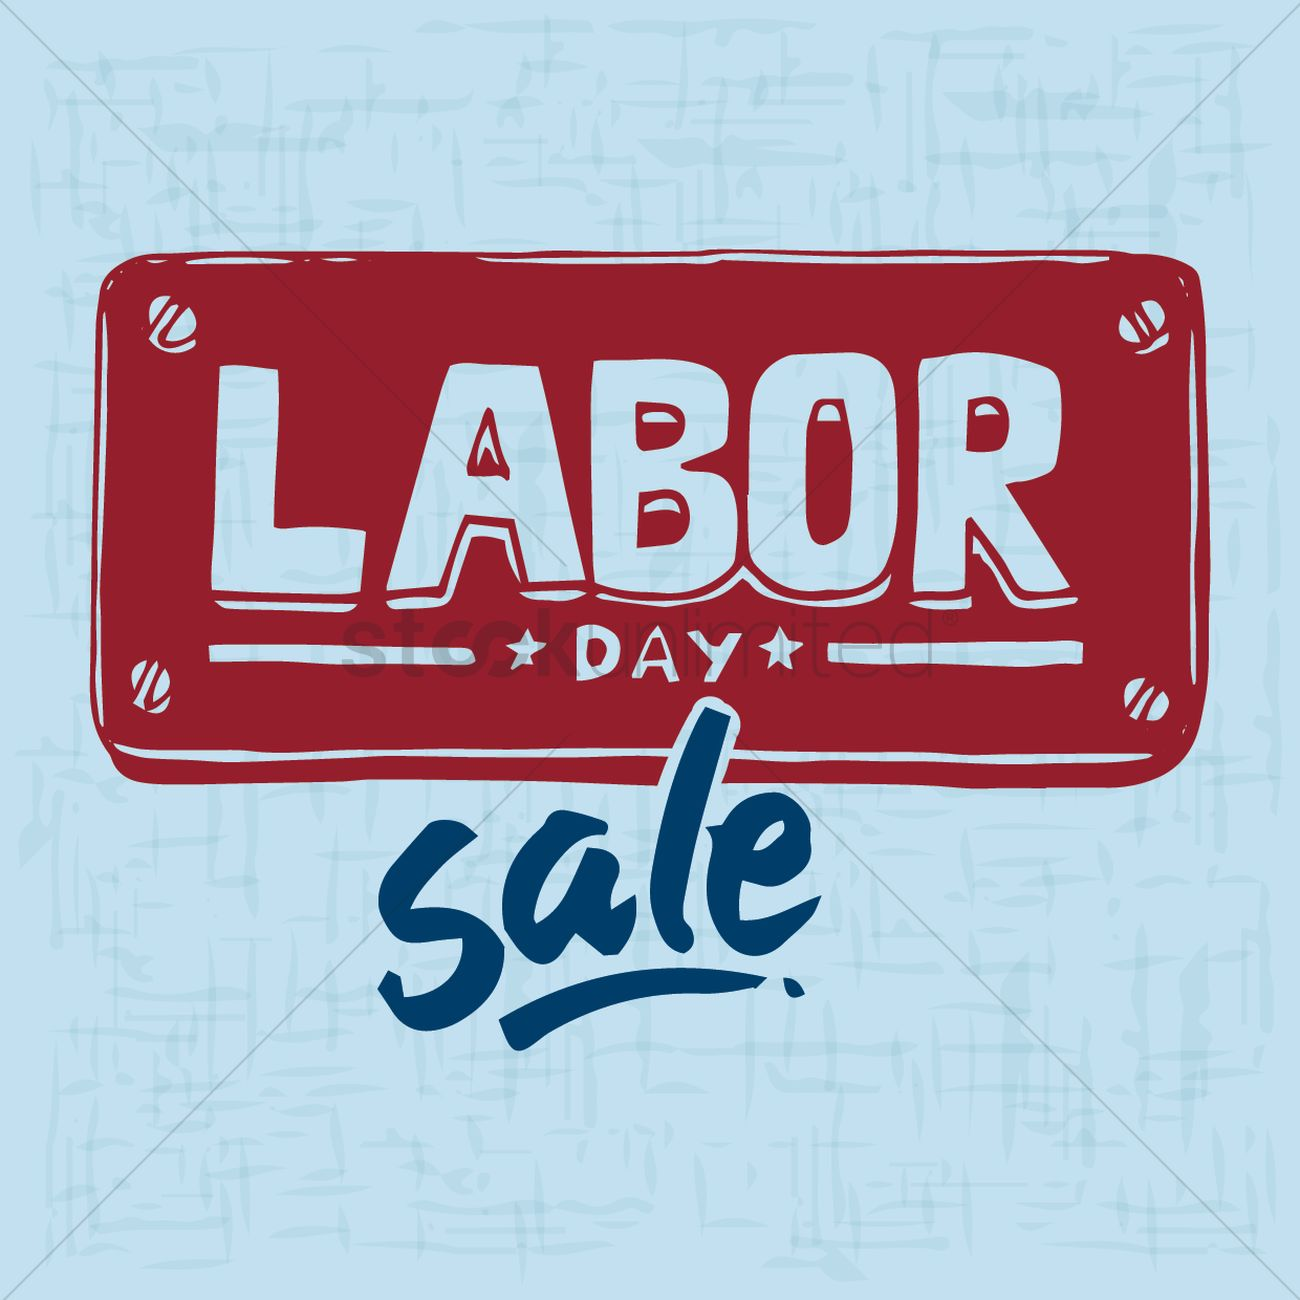 Labor Day Sale Poster Vector Image 1533833 Stockunlimited